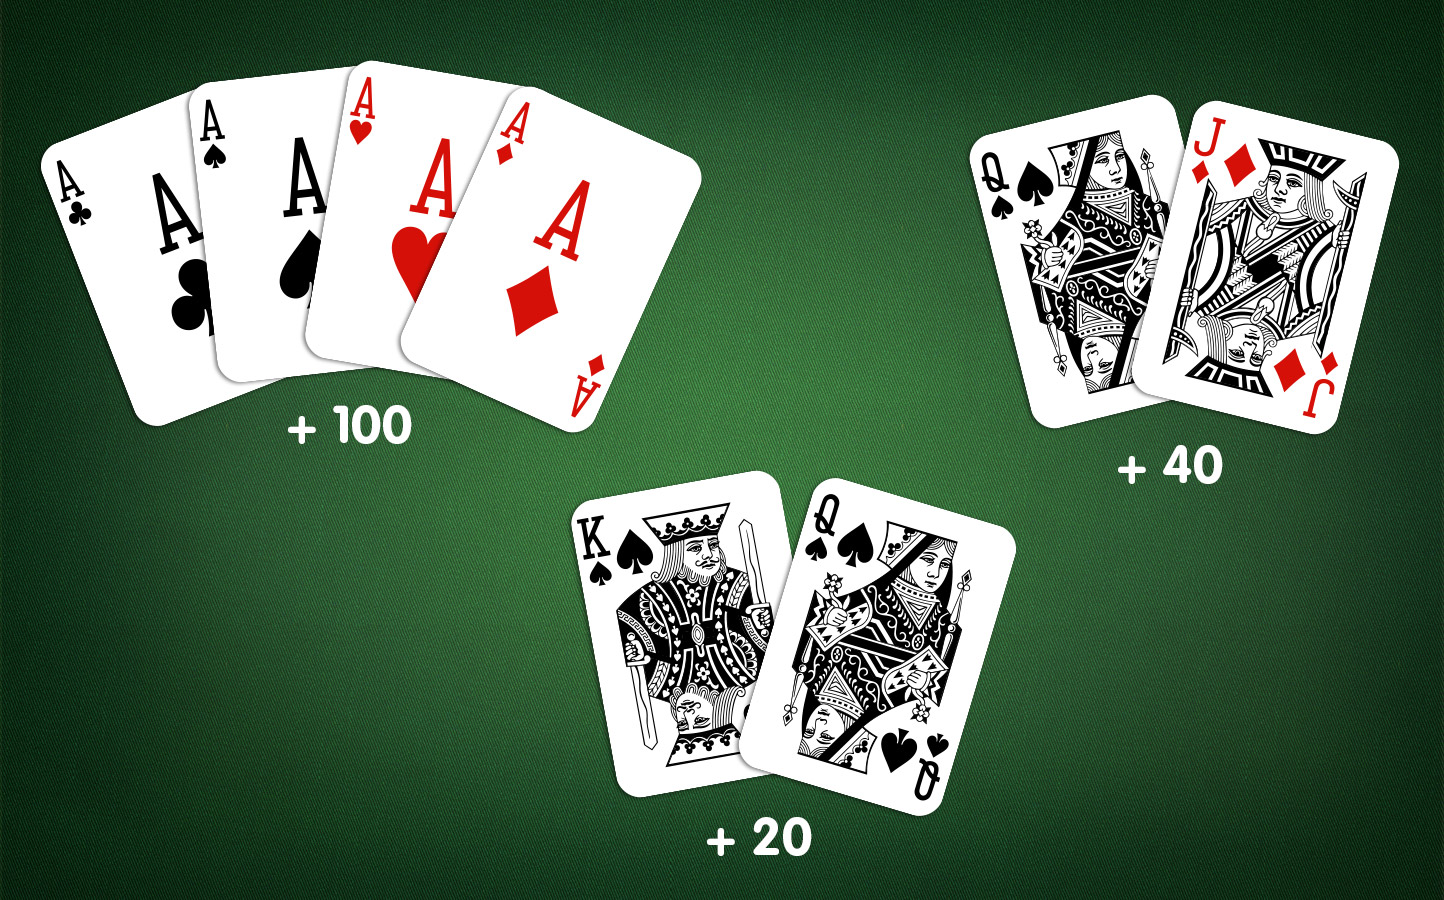 Lesson 2: Melds in Pinochle